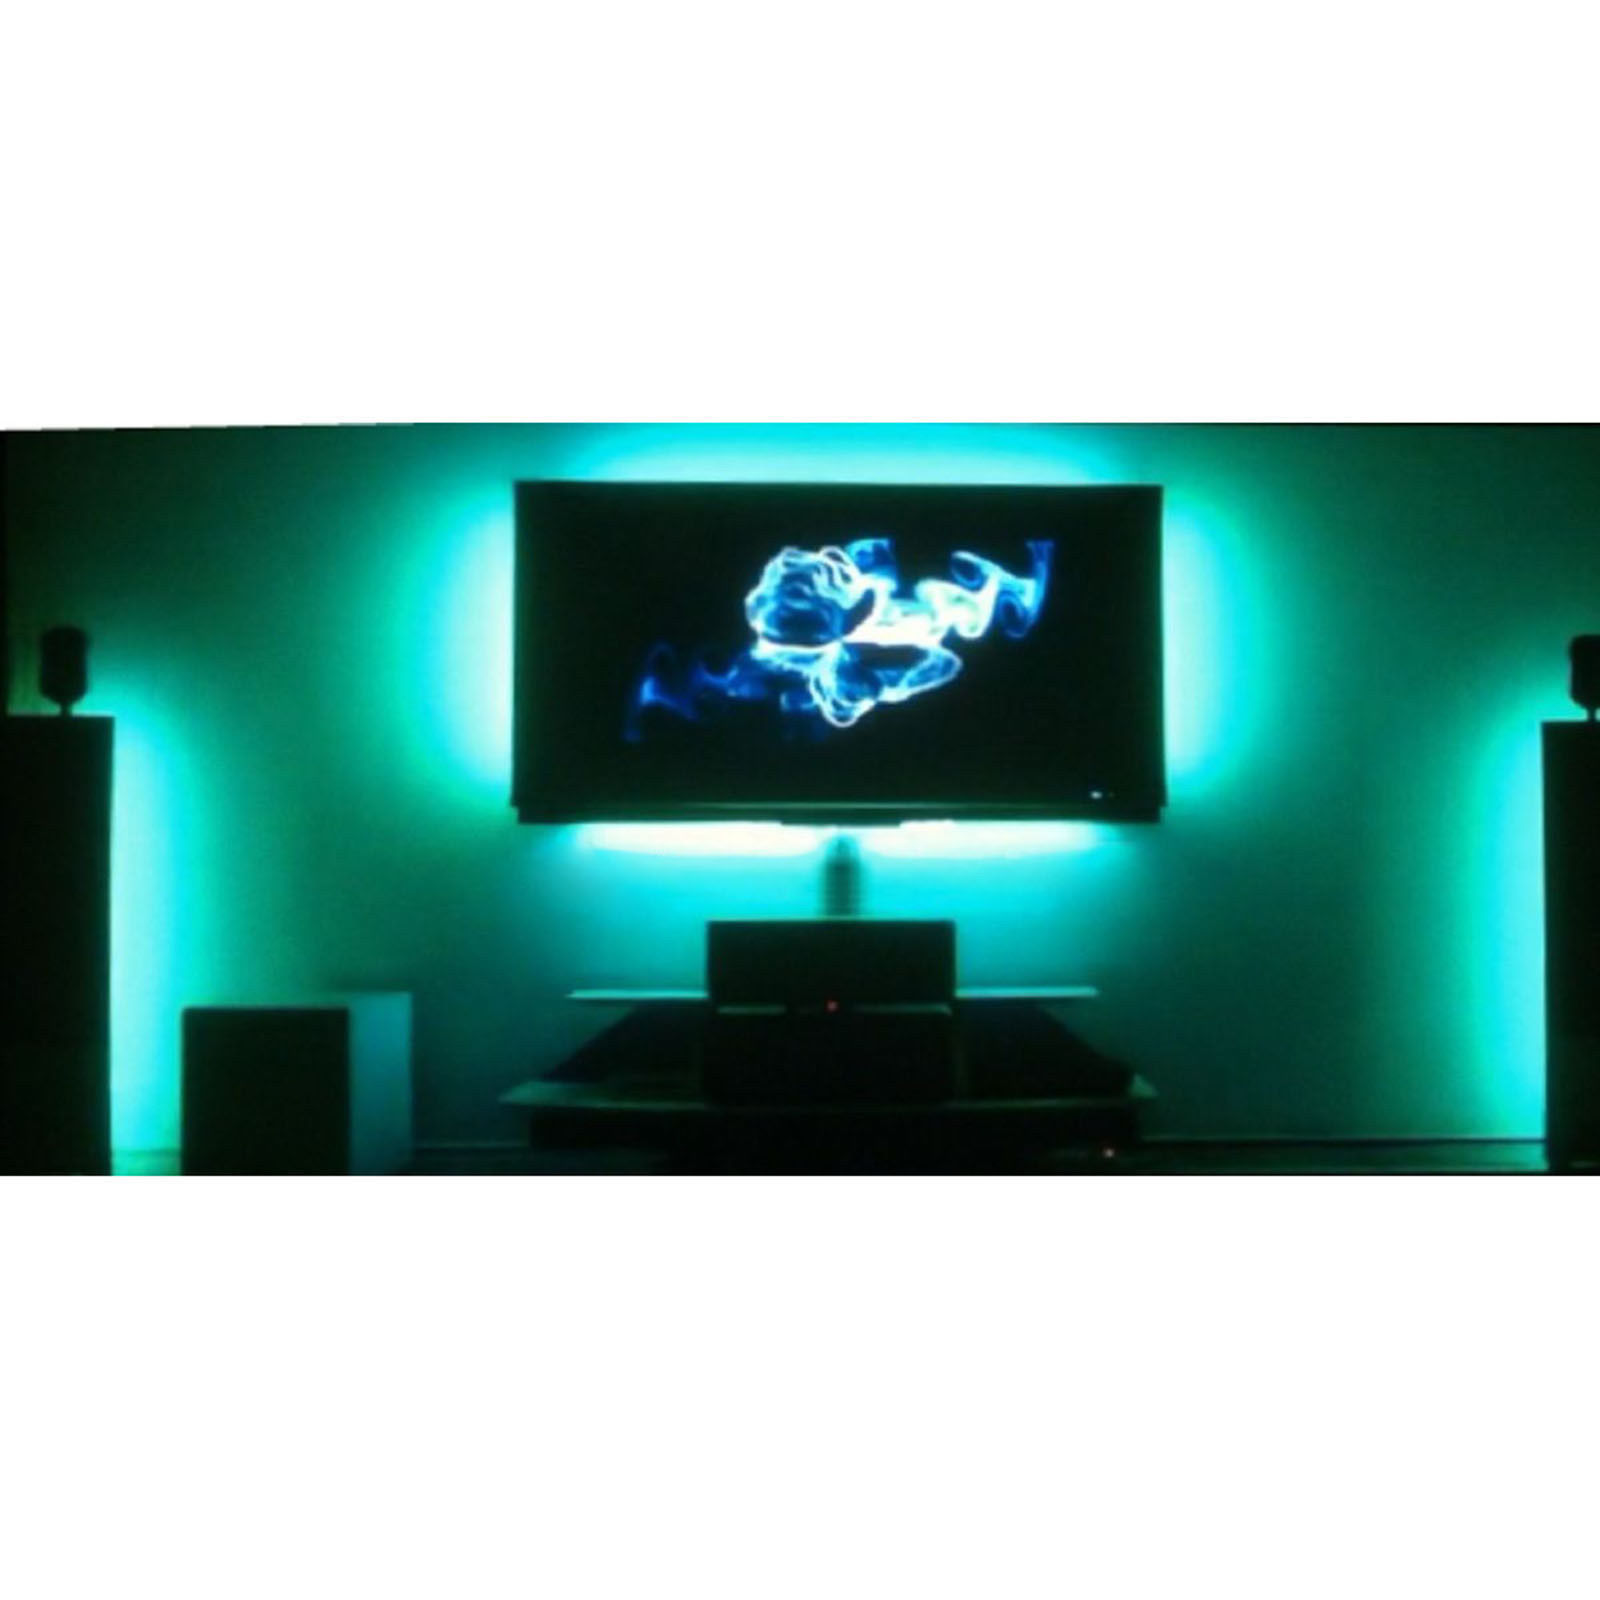 RGB LED LCD Pc Ambient Color Illuminate Tv Television Backlit Backlight Lighting - $49.95